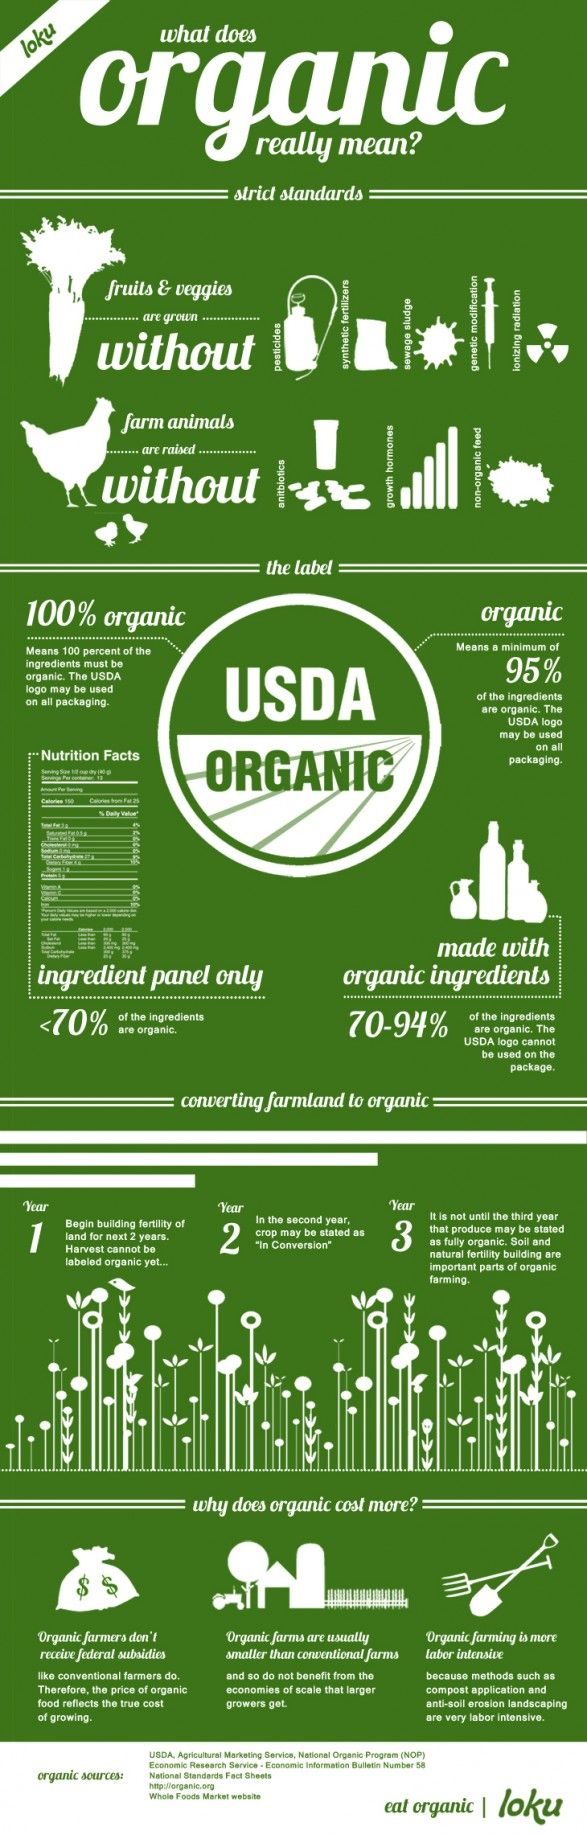 What Does Organic Mean? - infographic